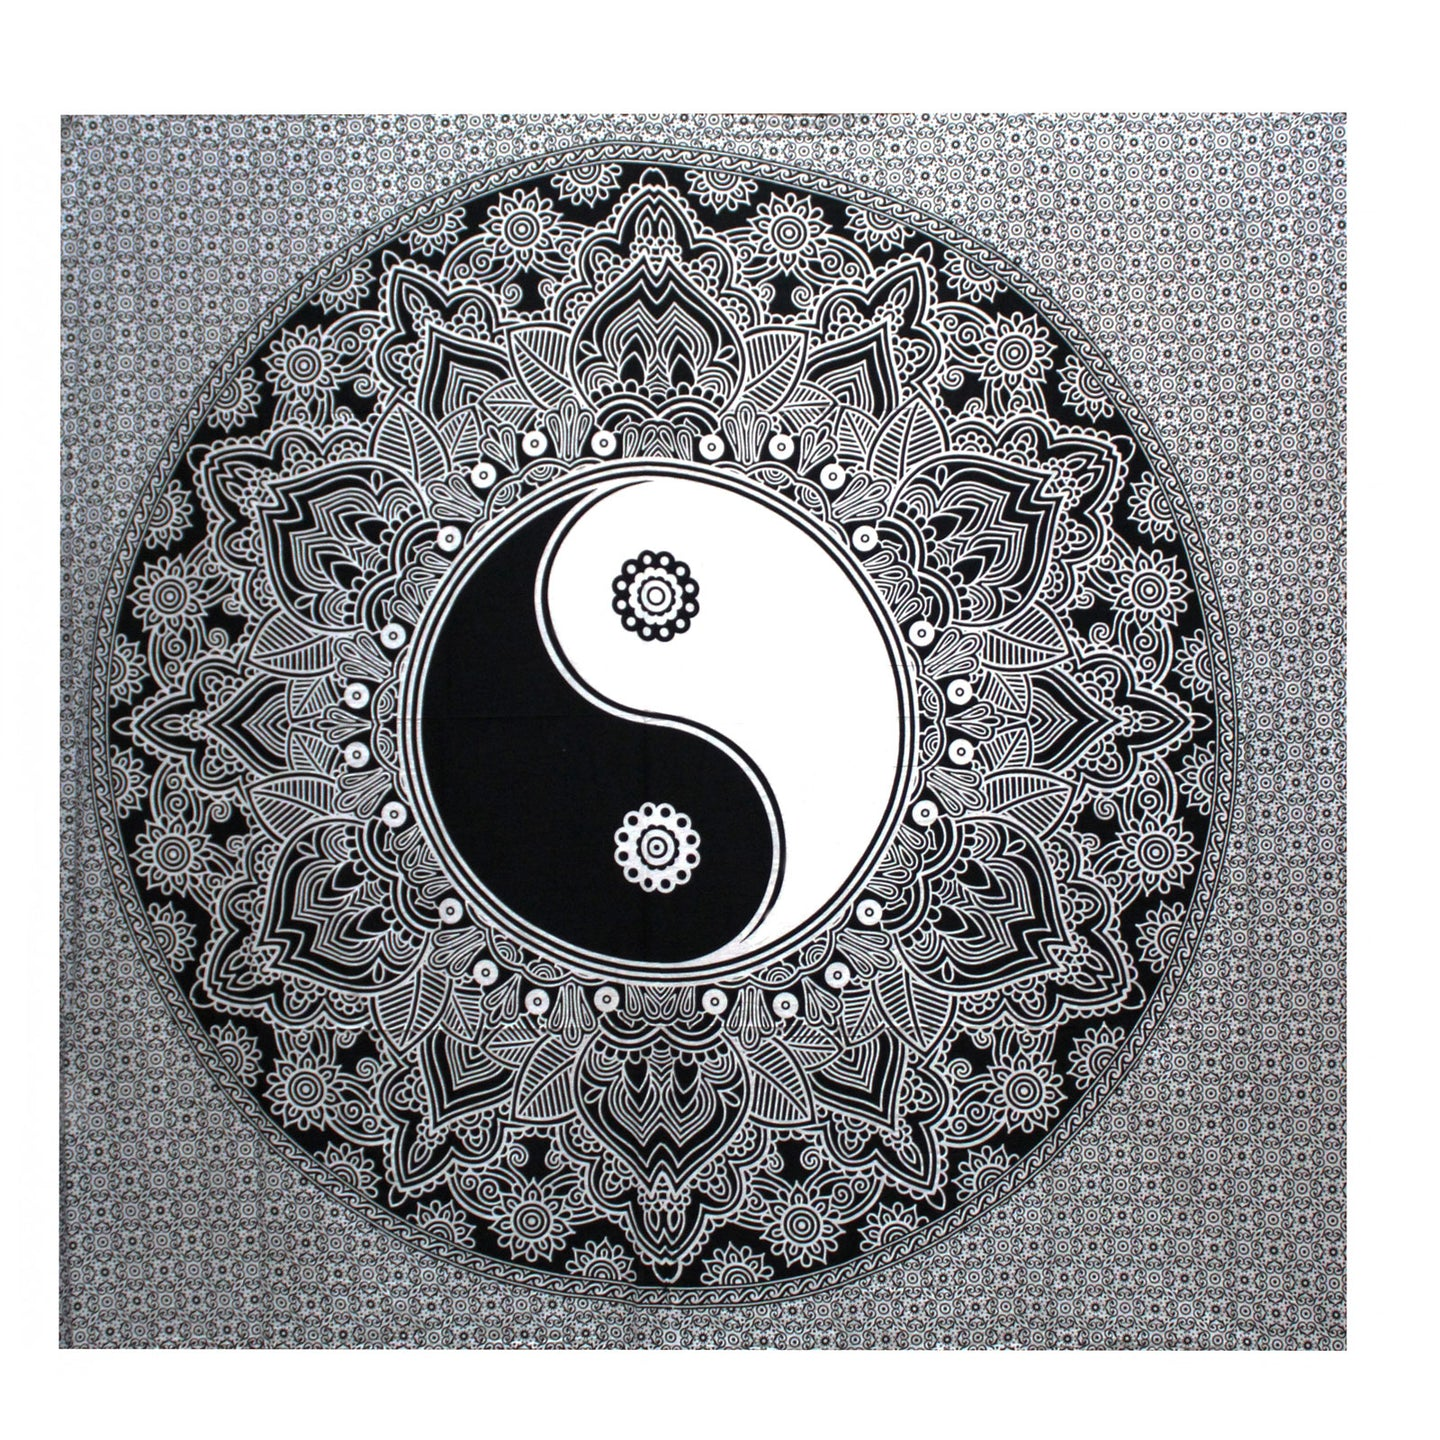 B&W Double Cotton Bedspread + Wall Hanging - Yin Yang